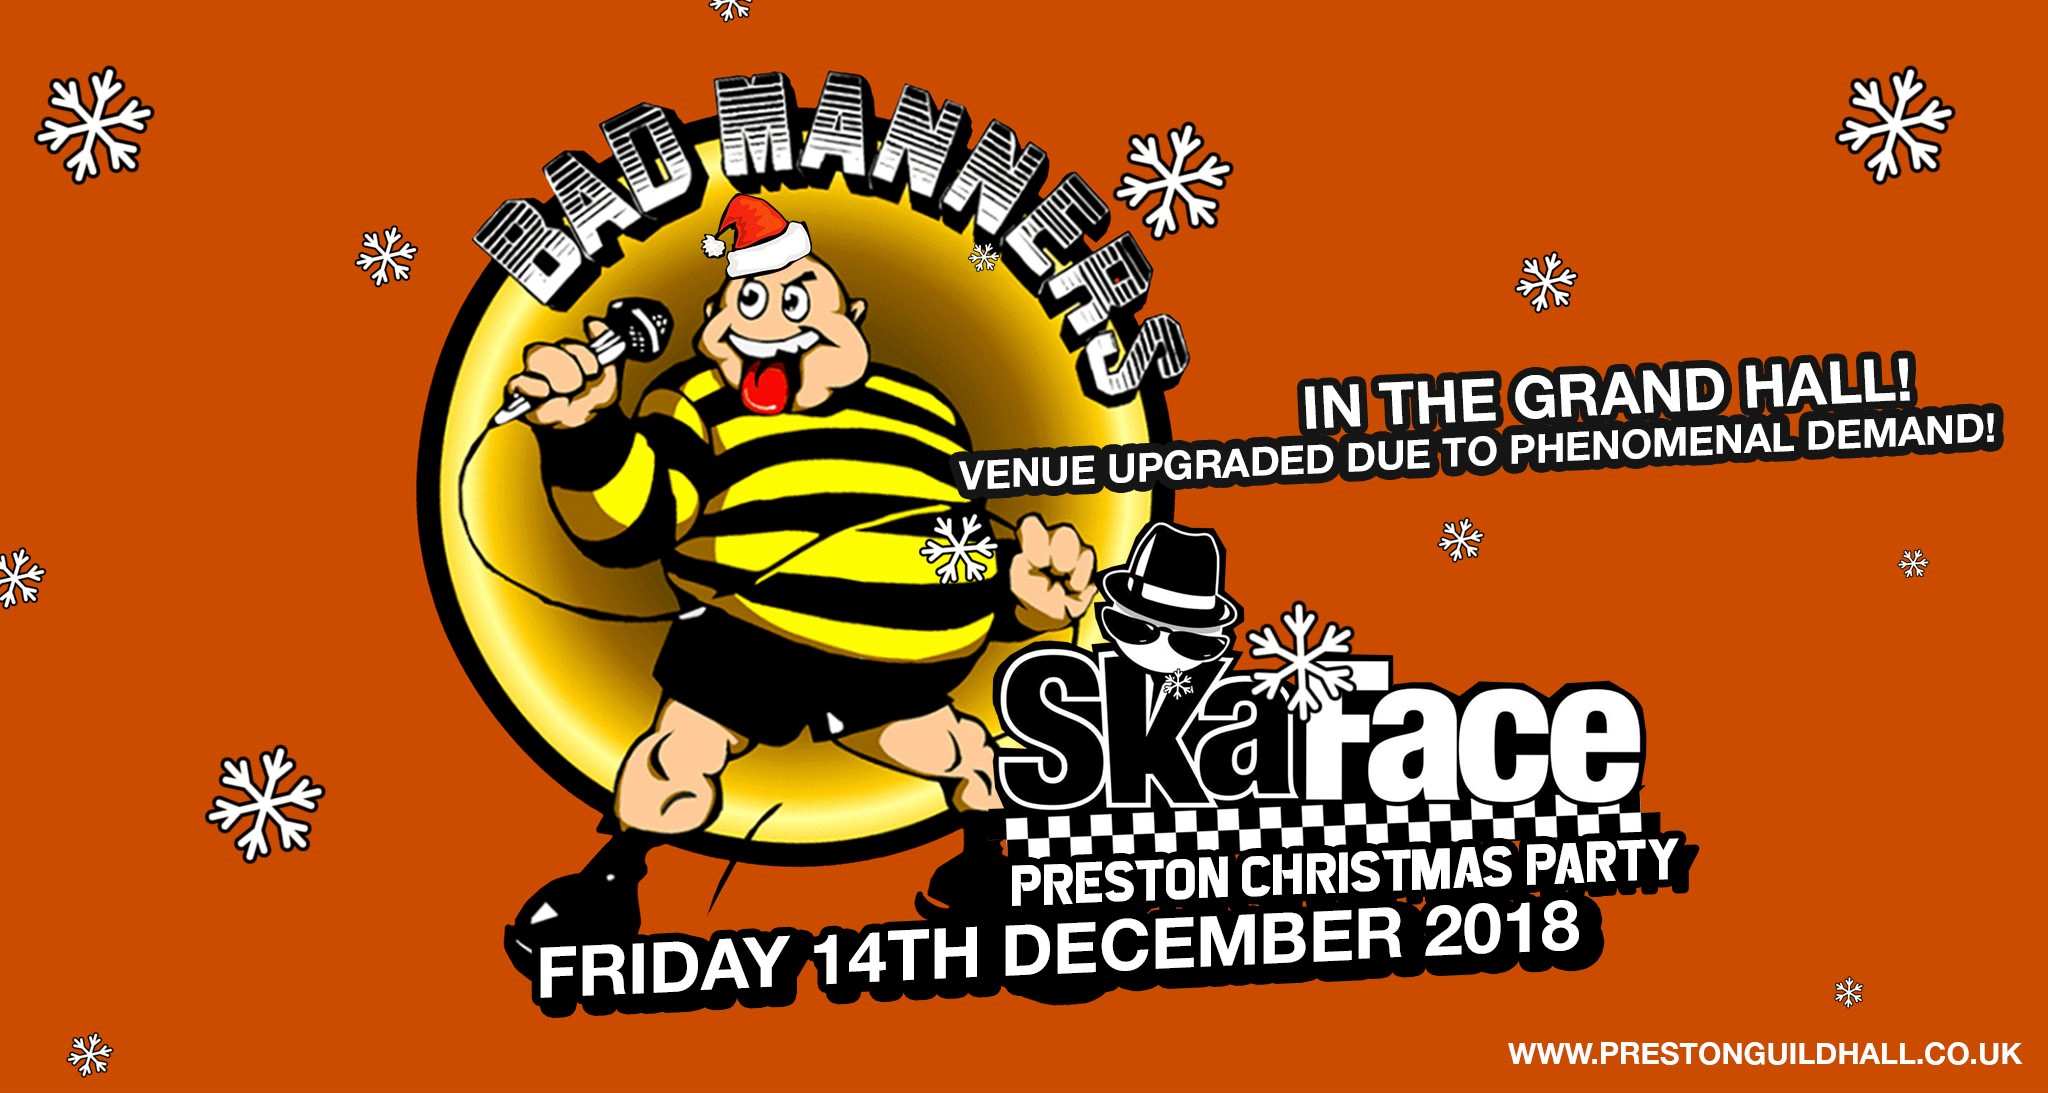 Bad Manners & Ska Face